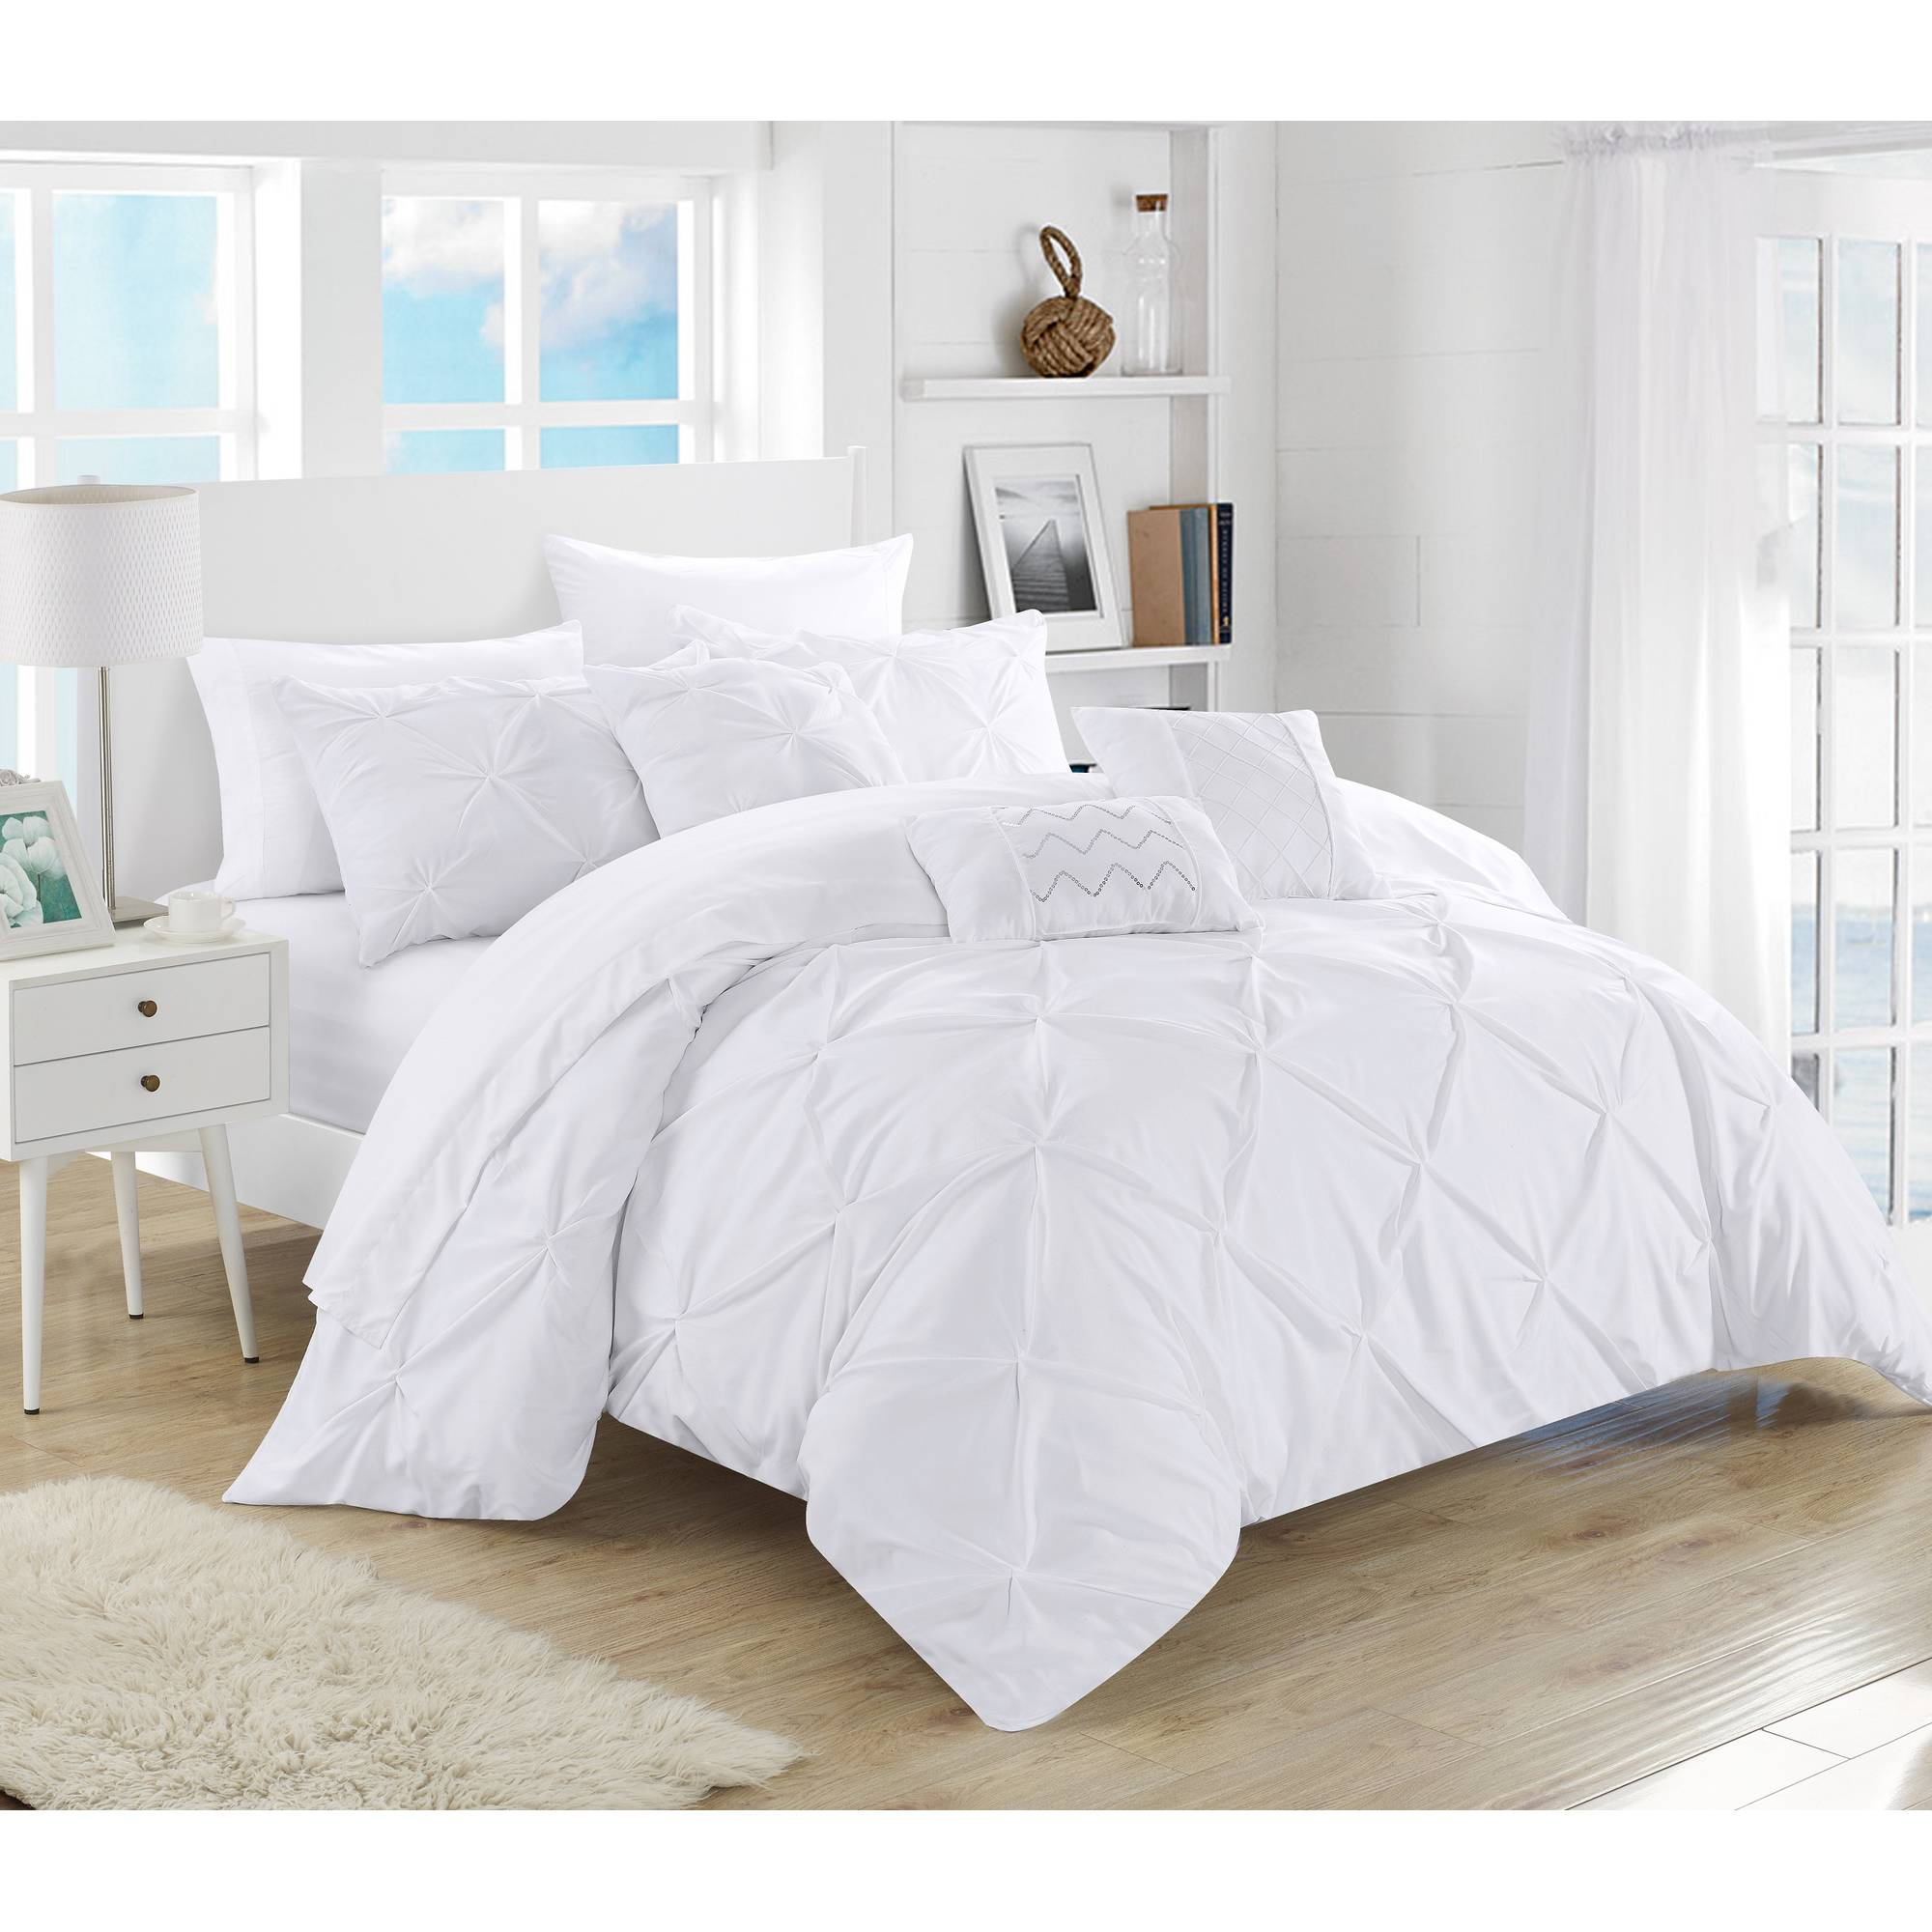 chic home valentina 10 piece bed in a bag comforter set walmart com